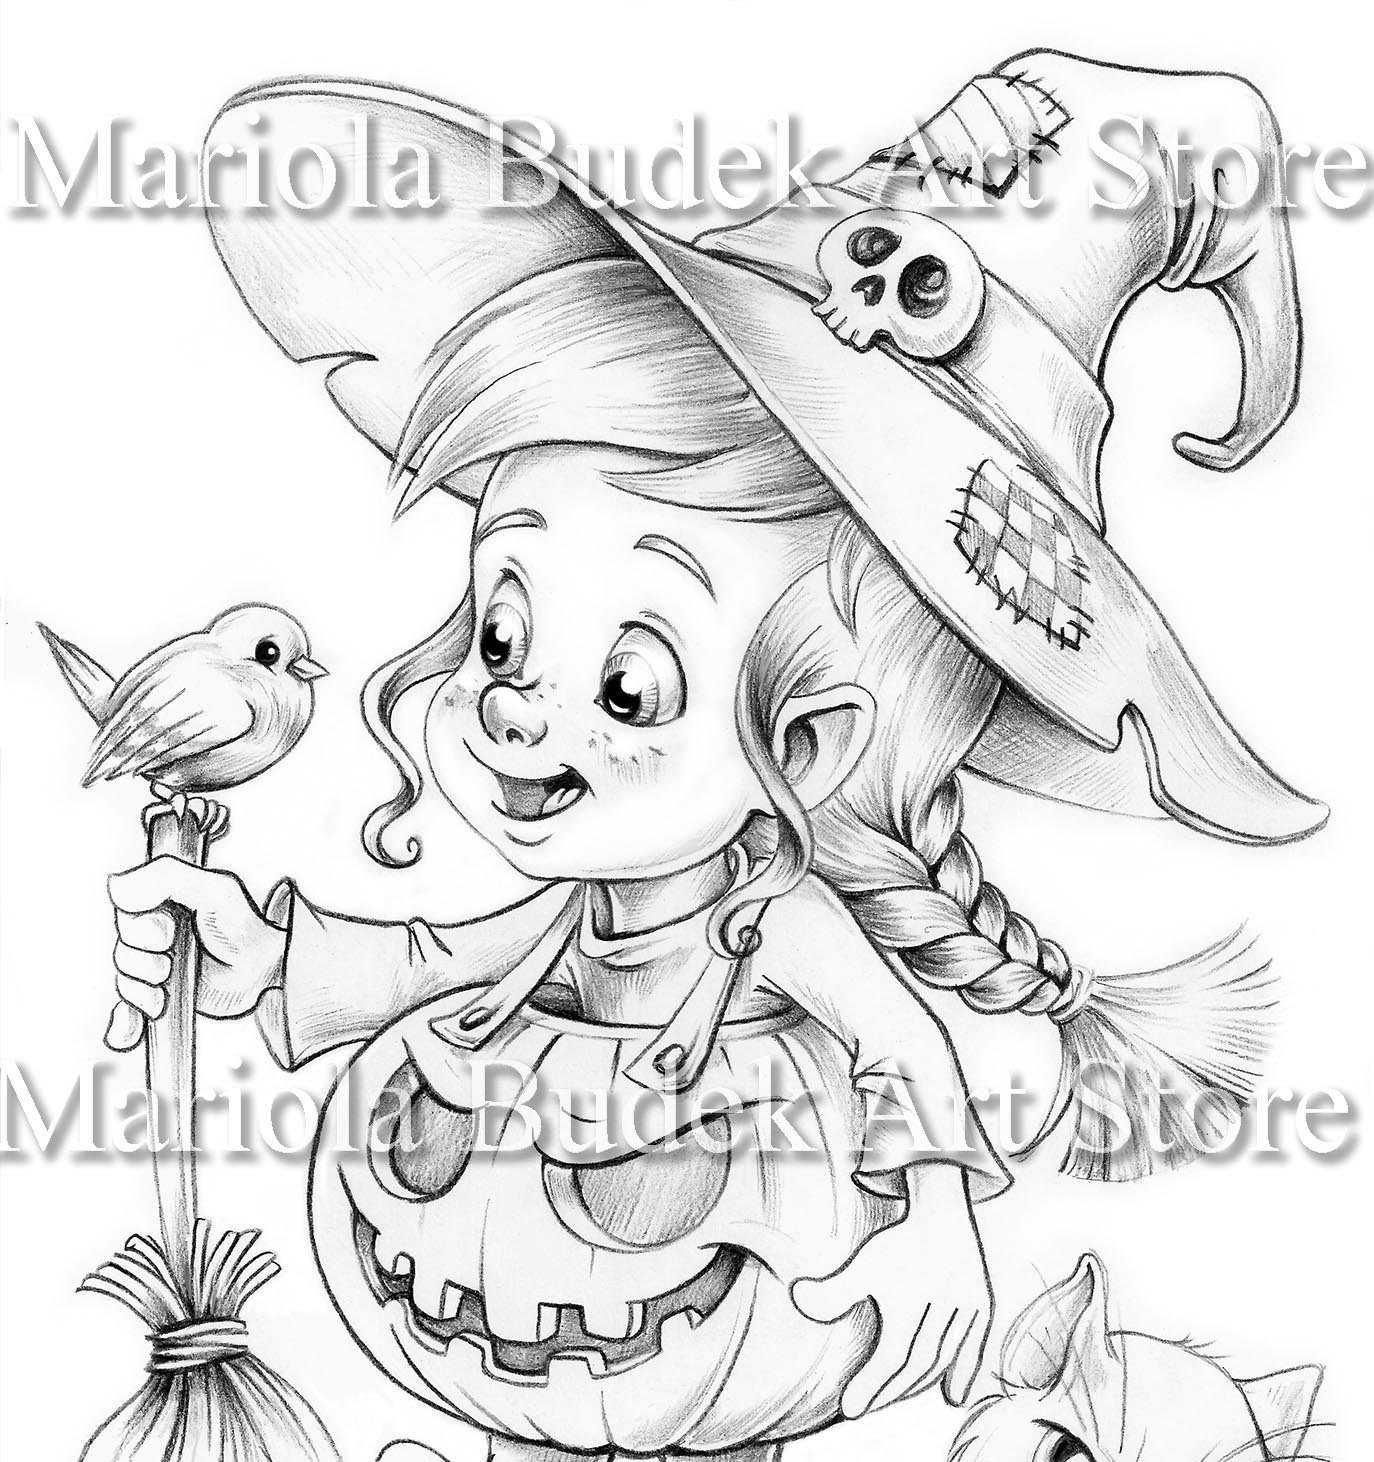 Witchy Mariola Budek Coloring Page